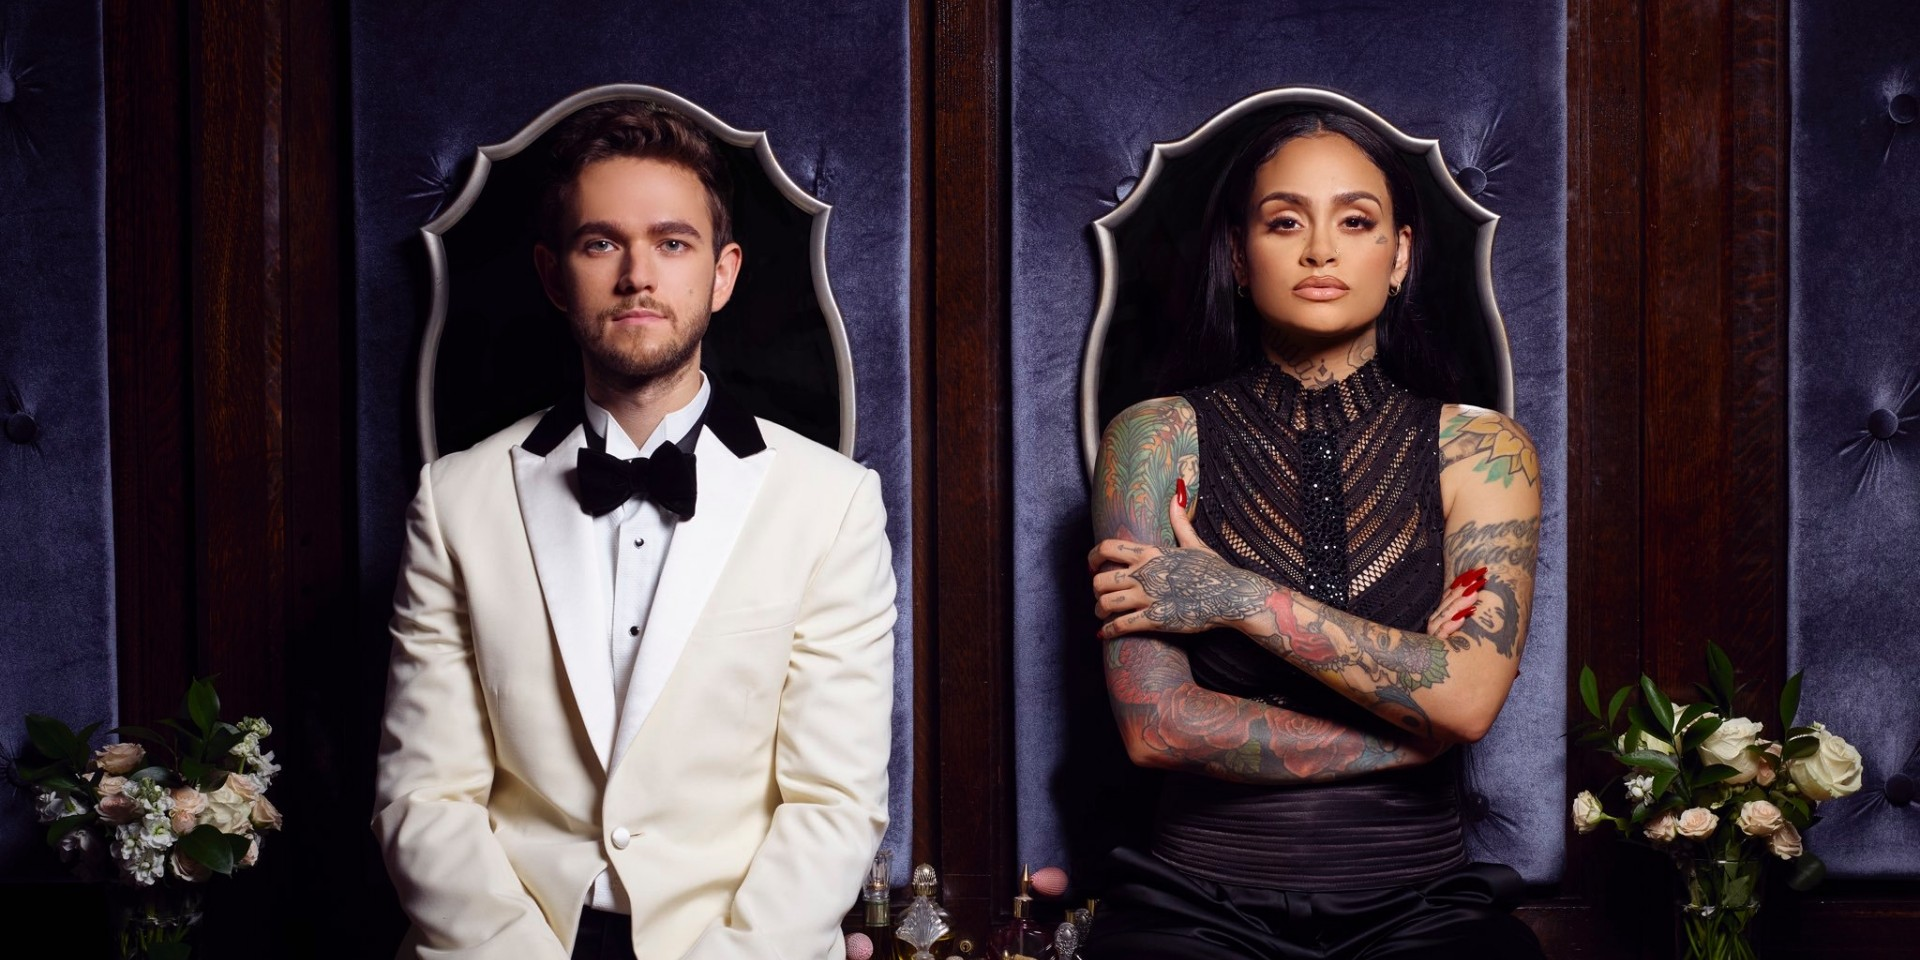 Zedd and Kehlani join forces on new soul-infused song, 'Good Thing'